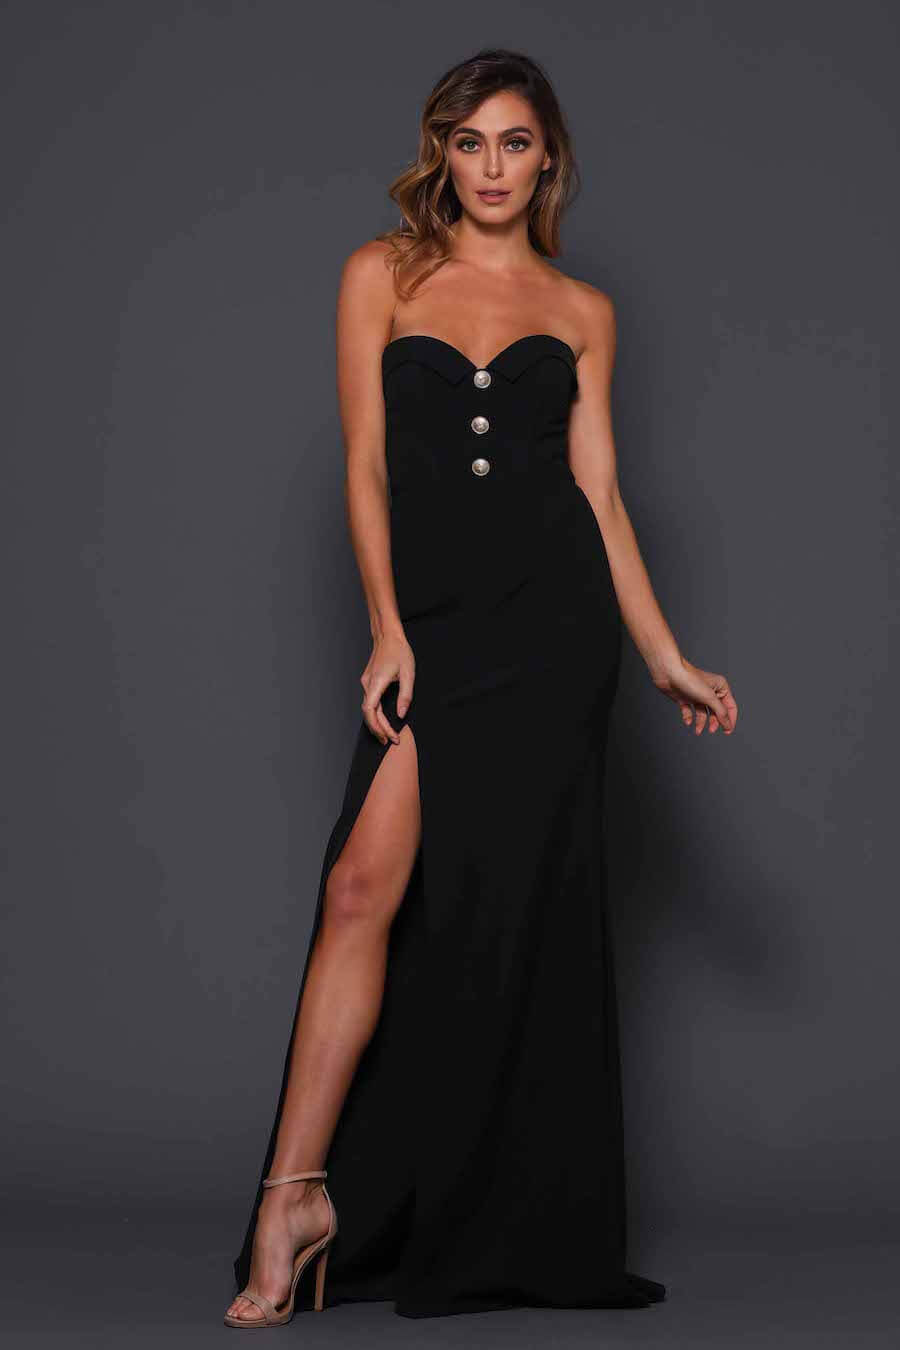 Strapless full length gown with gold button detail and high split